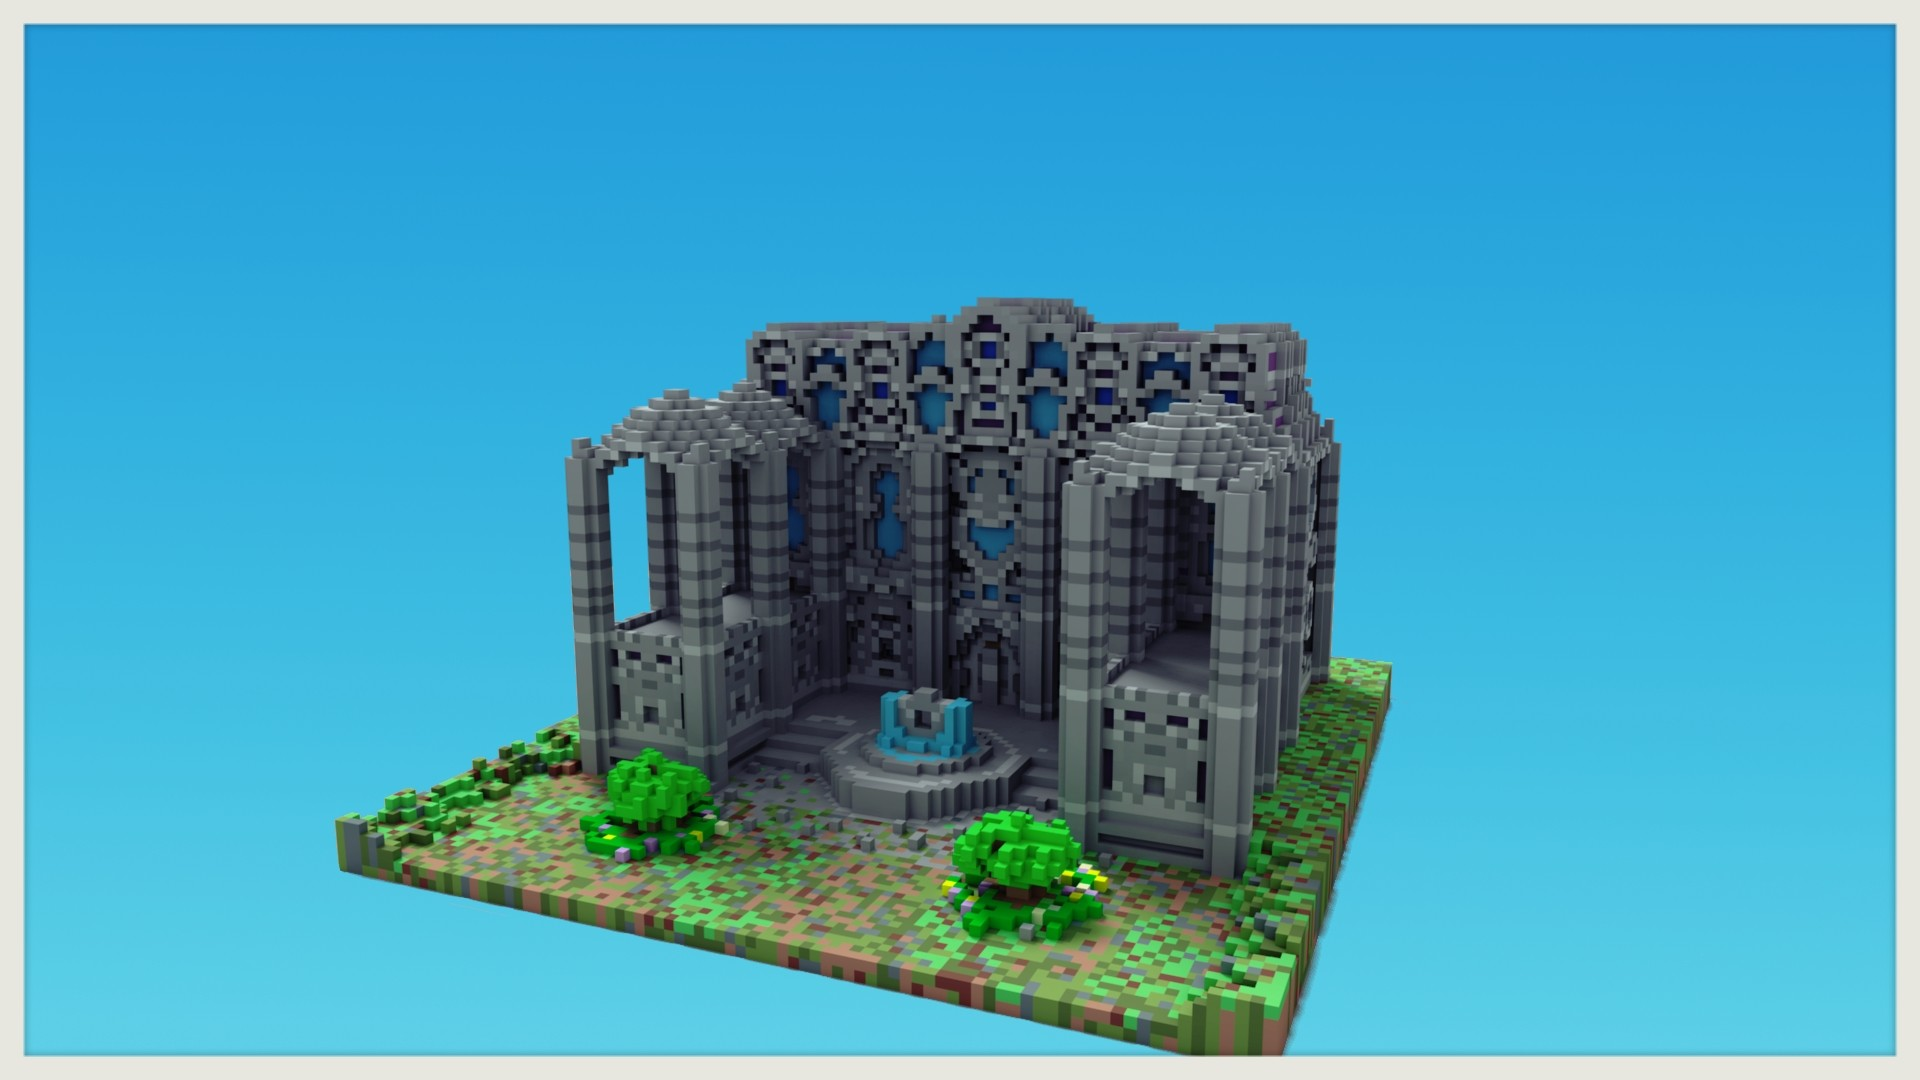 ArtStation - A minecraft building with a magica voxel render